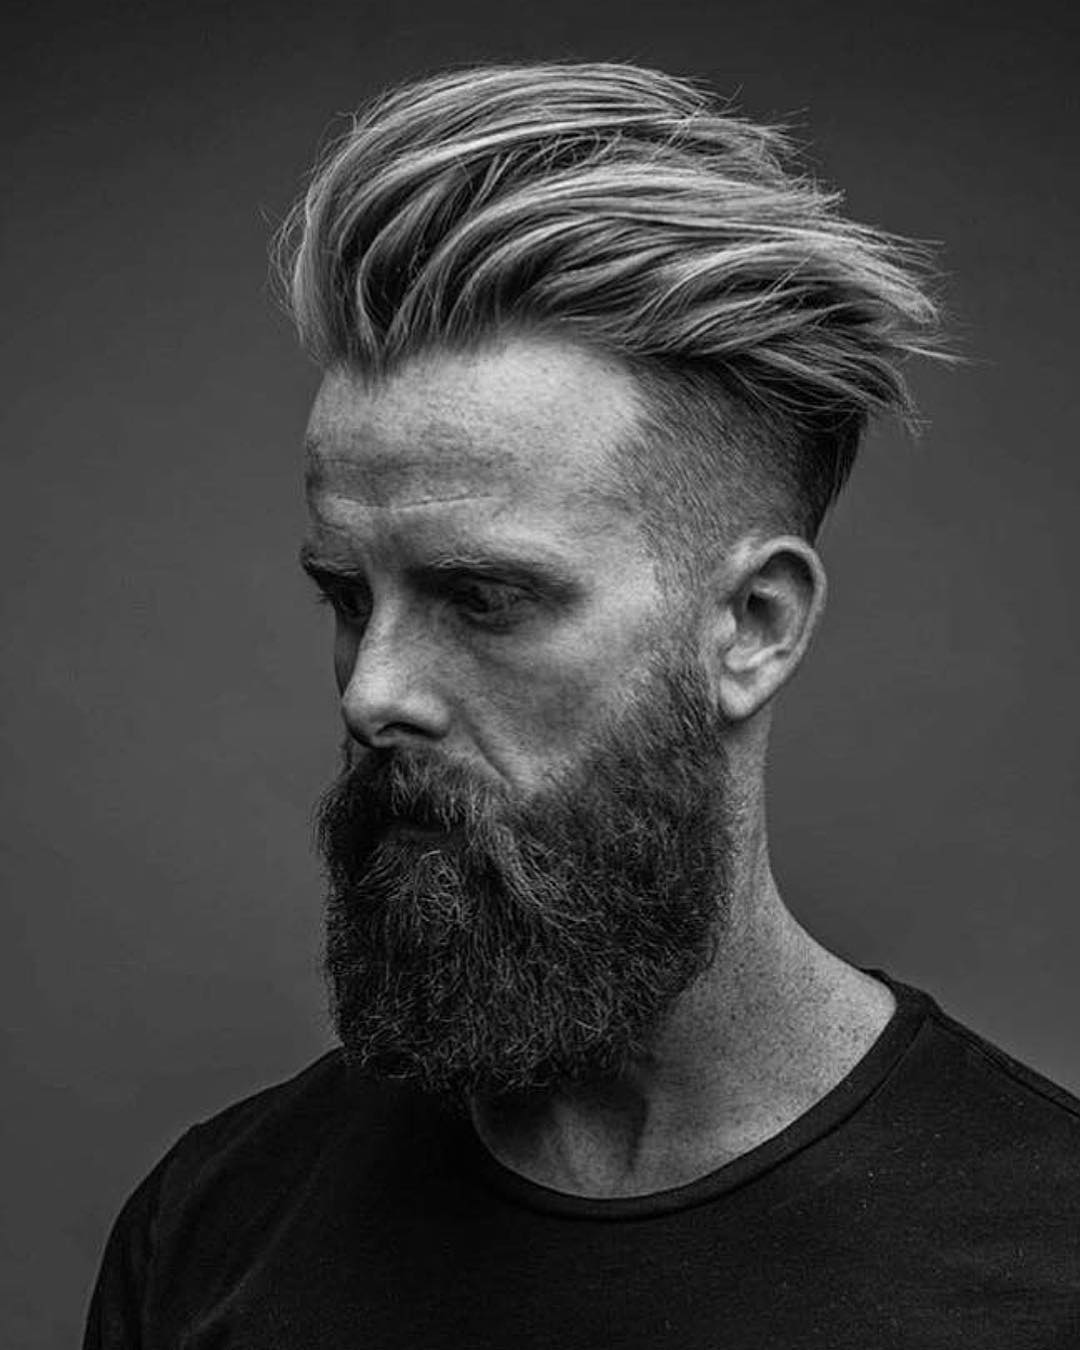 mattyconrad Mens Medium Length Hairstyles high textured spikes beard